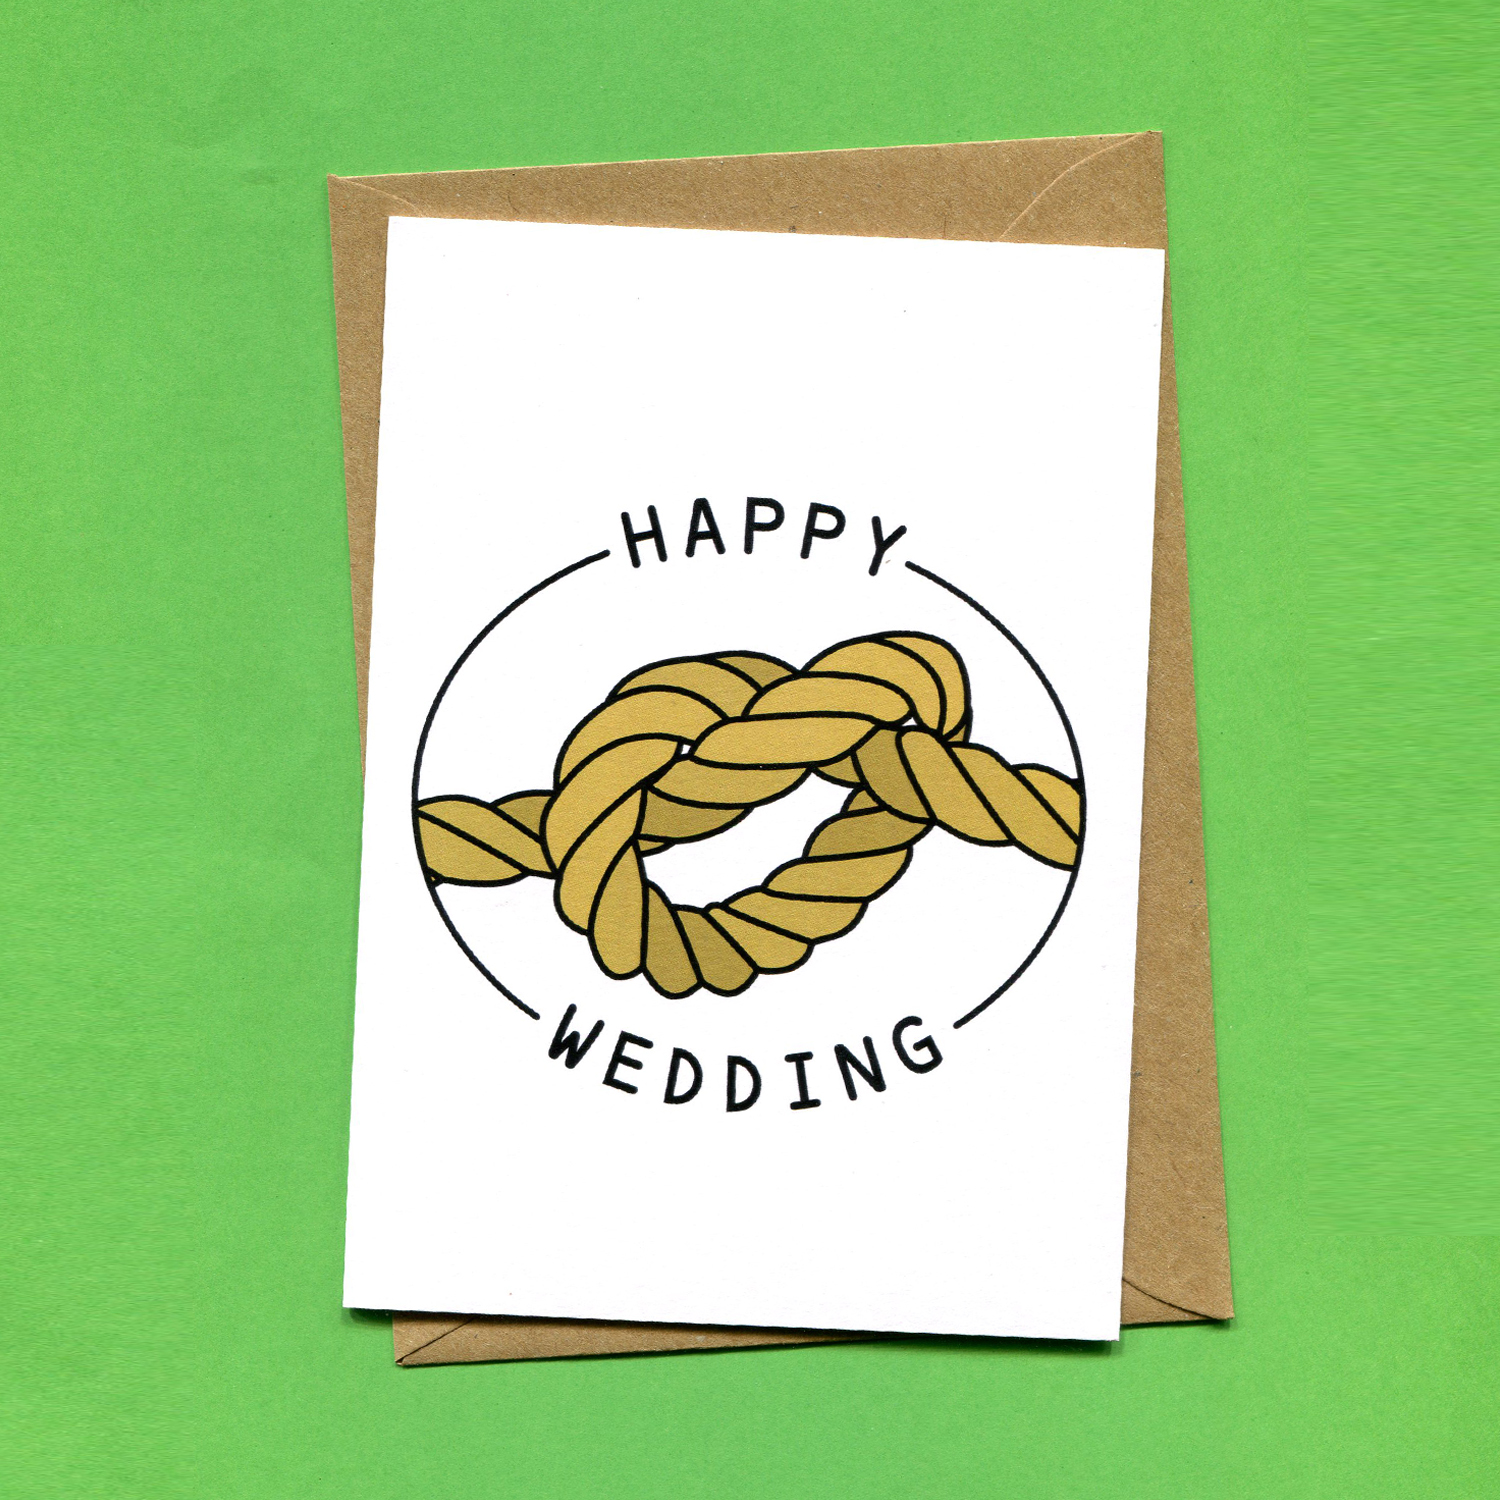 Catalogue_Things by Bean Happy Wedding Greeting Card New.jpg